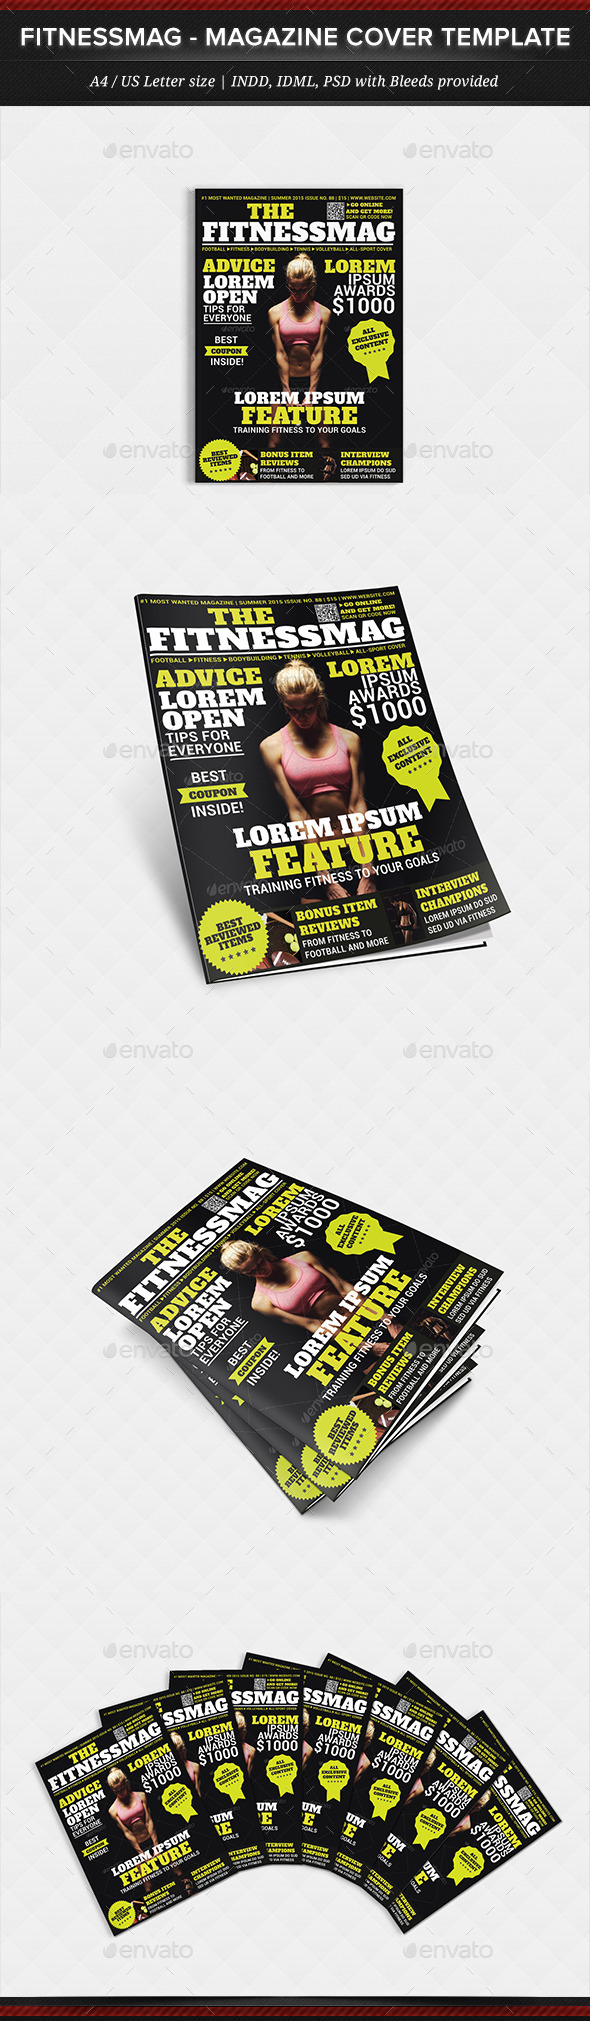 FitnessMag - Multipurpose Magazine Cover Template - Magazines Print Templates